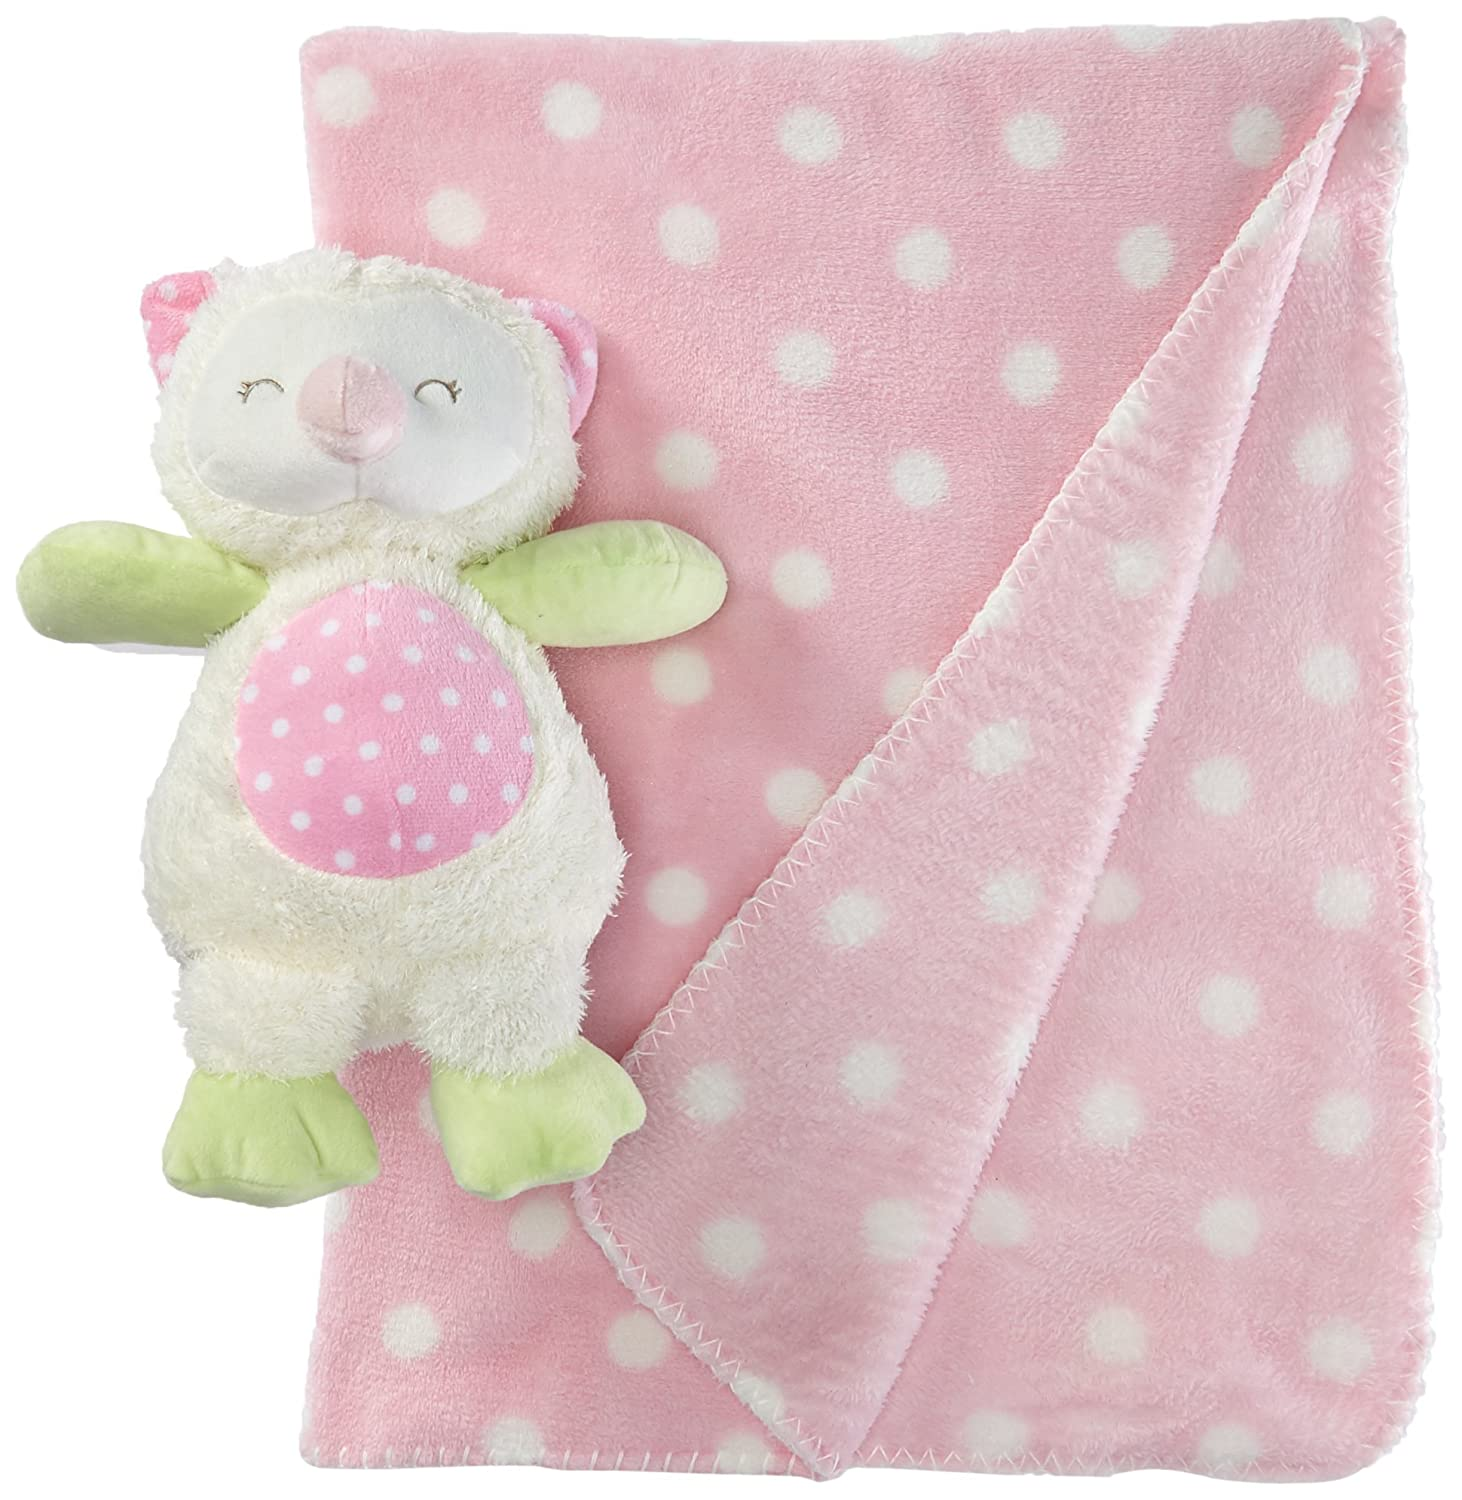 Stephan Baby Sleepy Owl Polka Dot Plush Blanket and 9-inch Plush Owl Gift Set, Pink and White by Stephan Baby